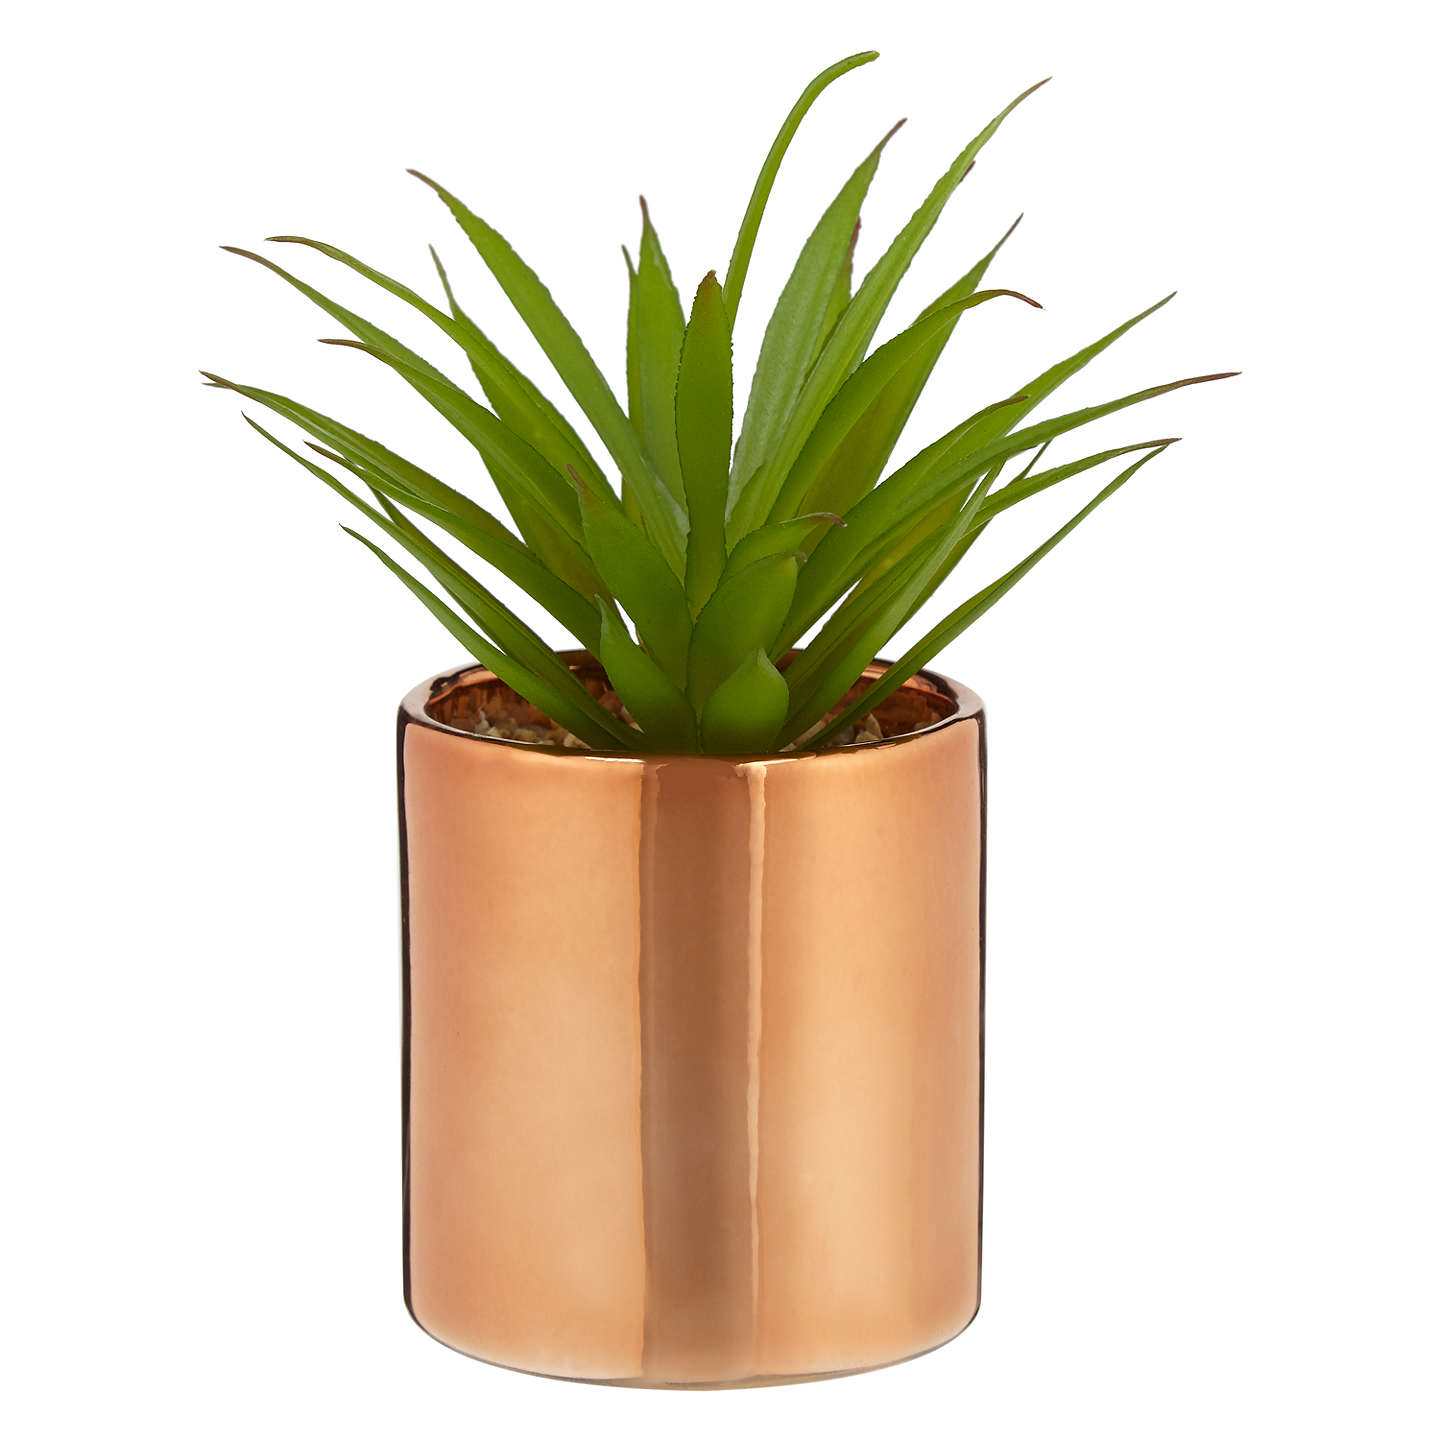 John lewis artificial cactus in metallic pot 7 inches at john lewis buyjohn lewis artificial cactus in metallic pot 7 inches online at johnlewis mightylinksfo